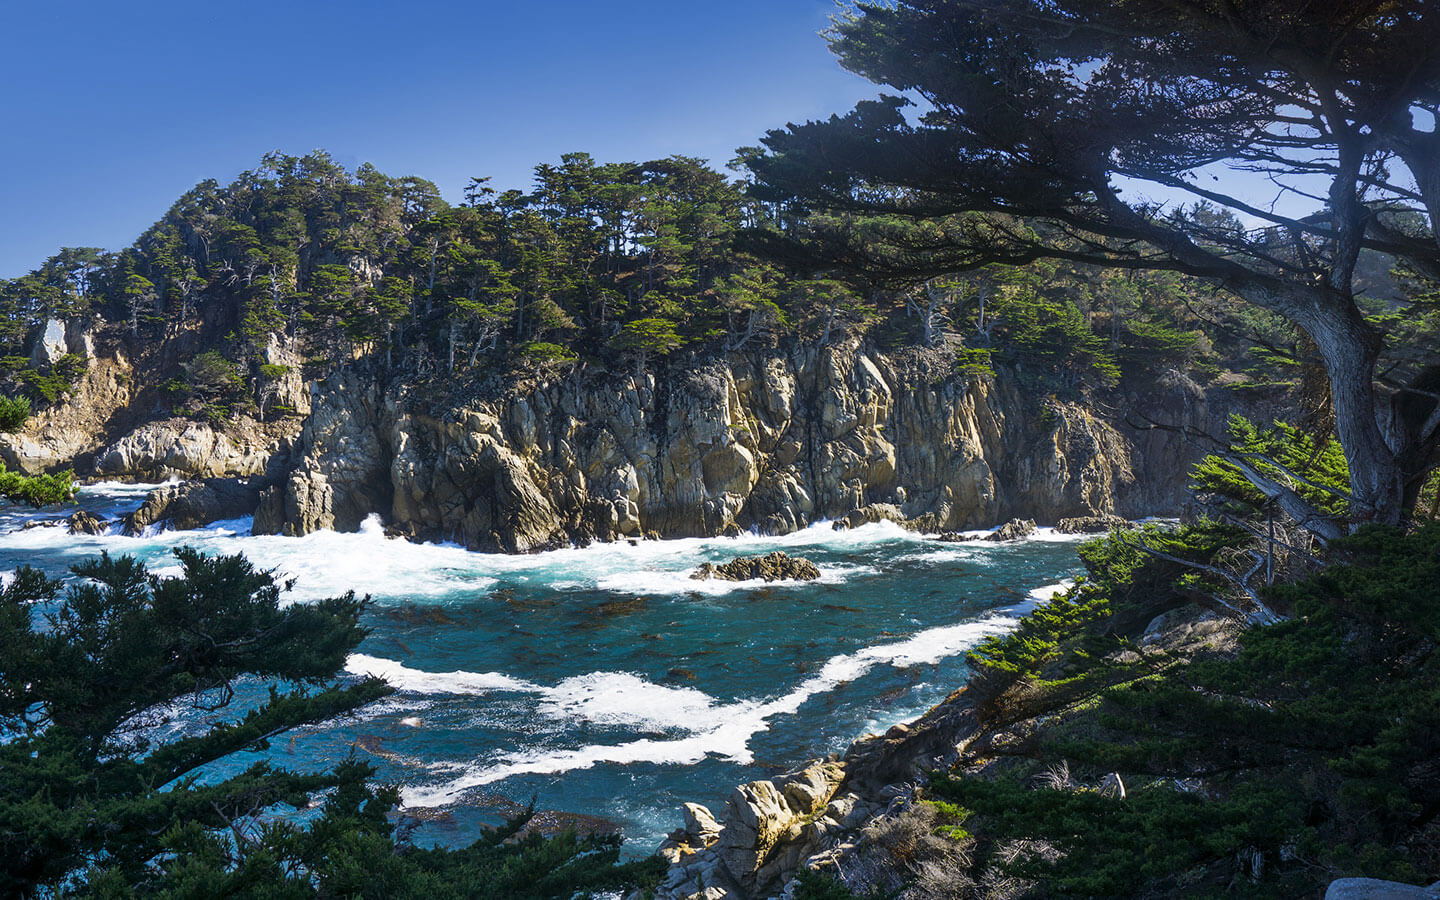 Point Lobos Outlook